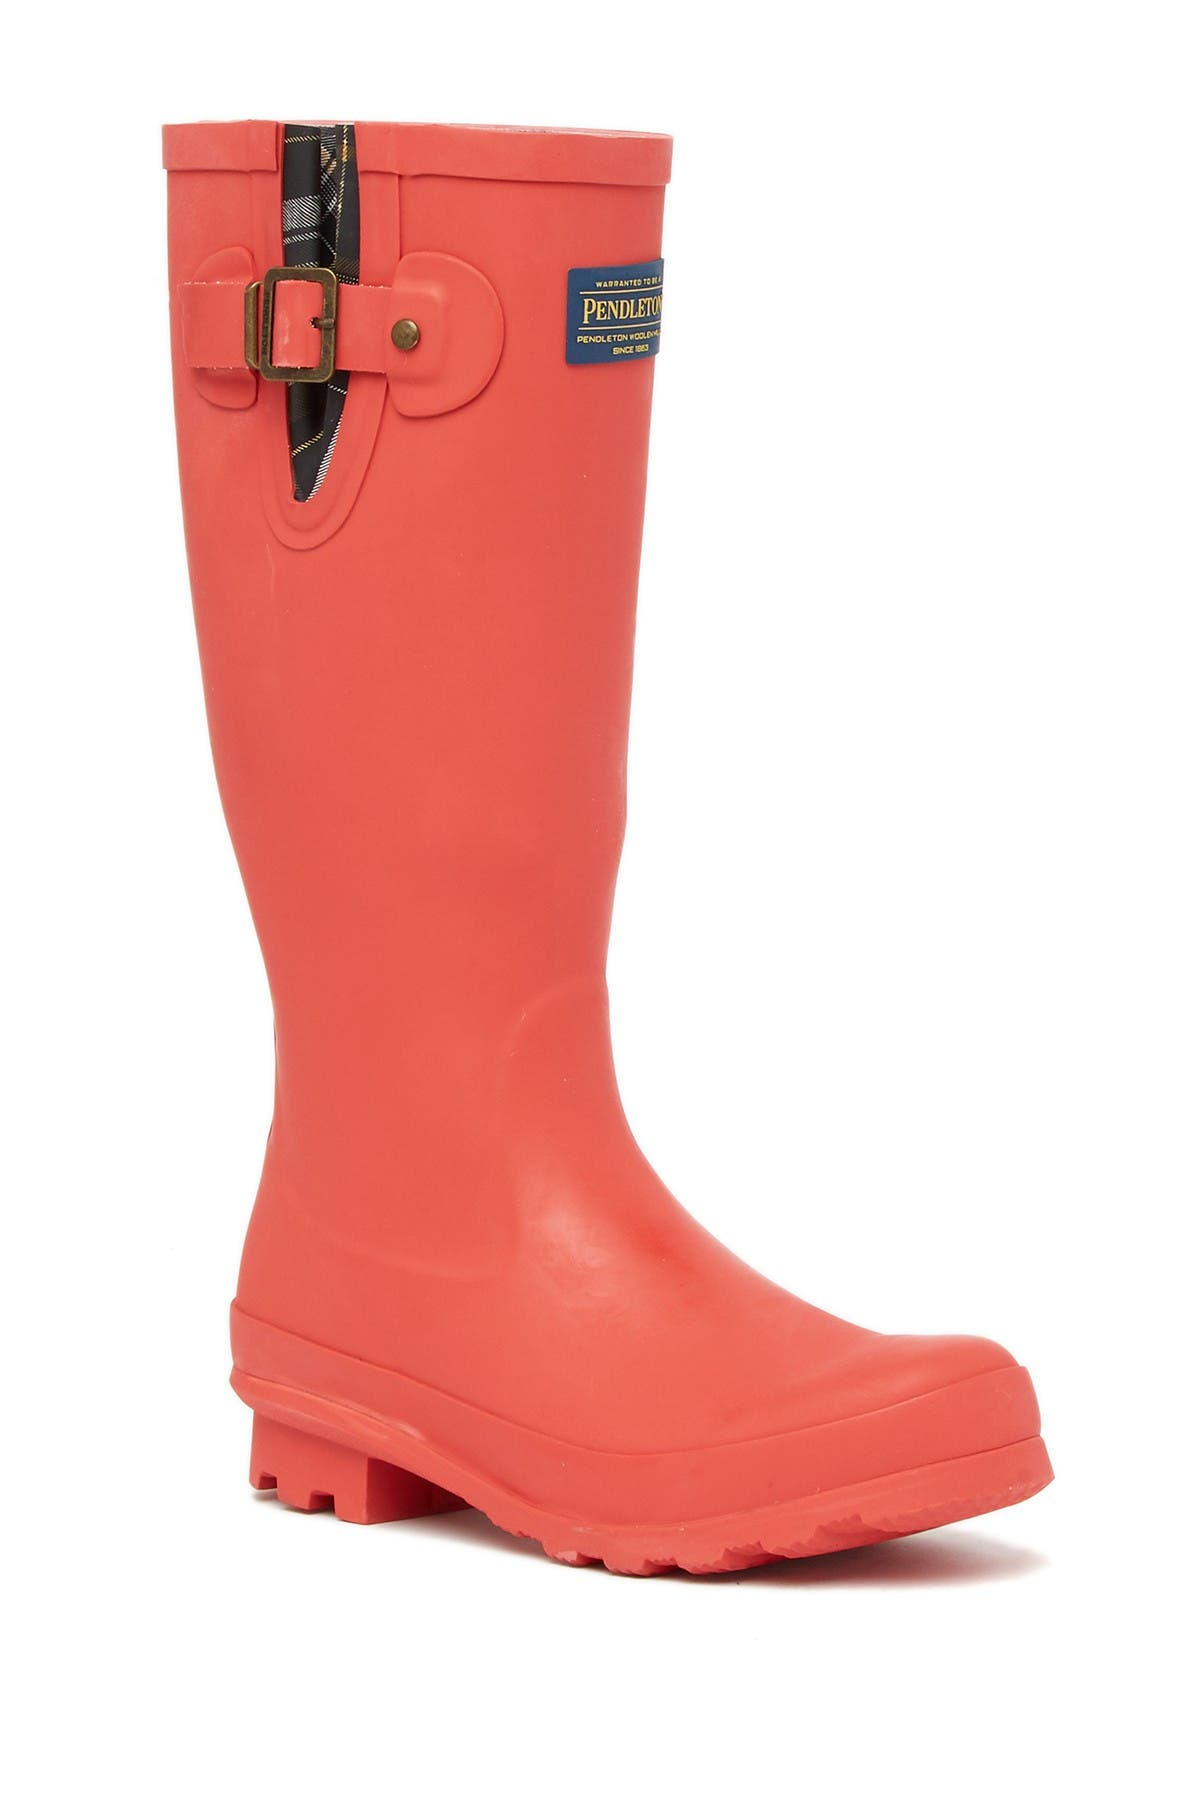 Image of PENDLETON Yakima Classic Waterproof Rain Boot